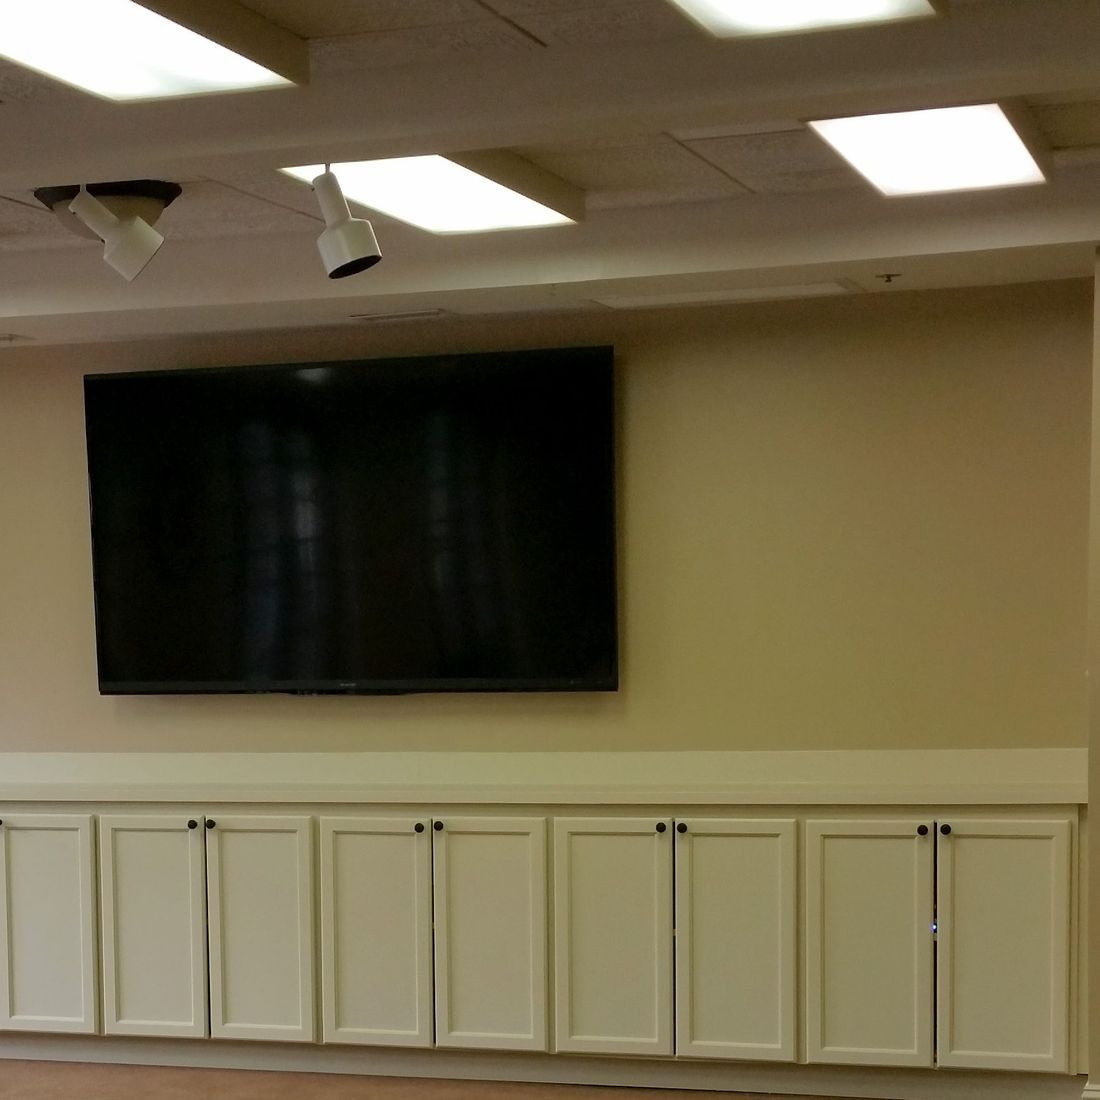 media room, office, conference room